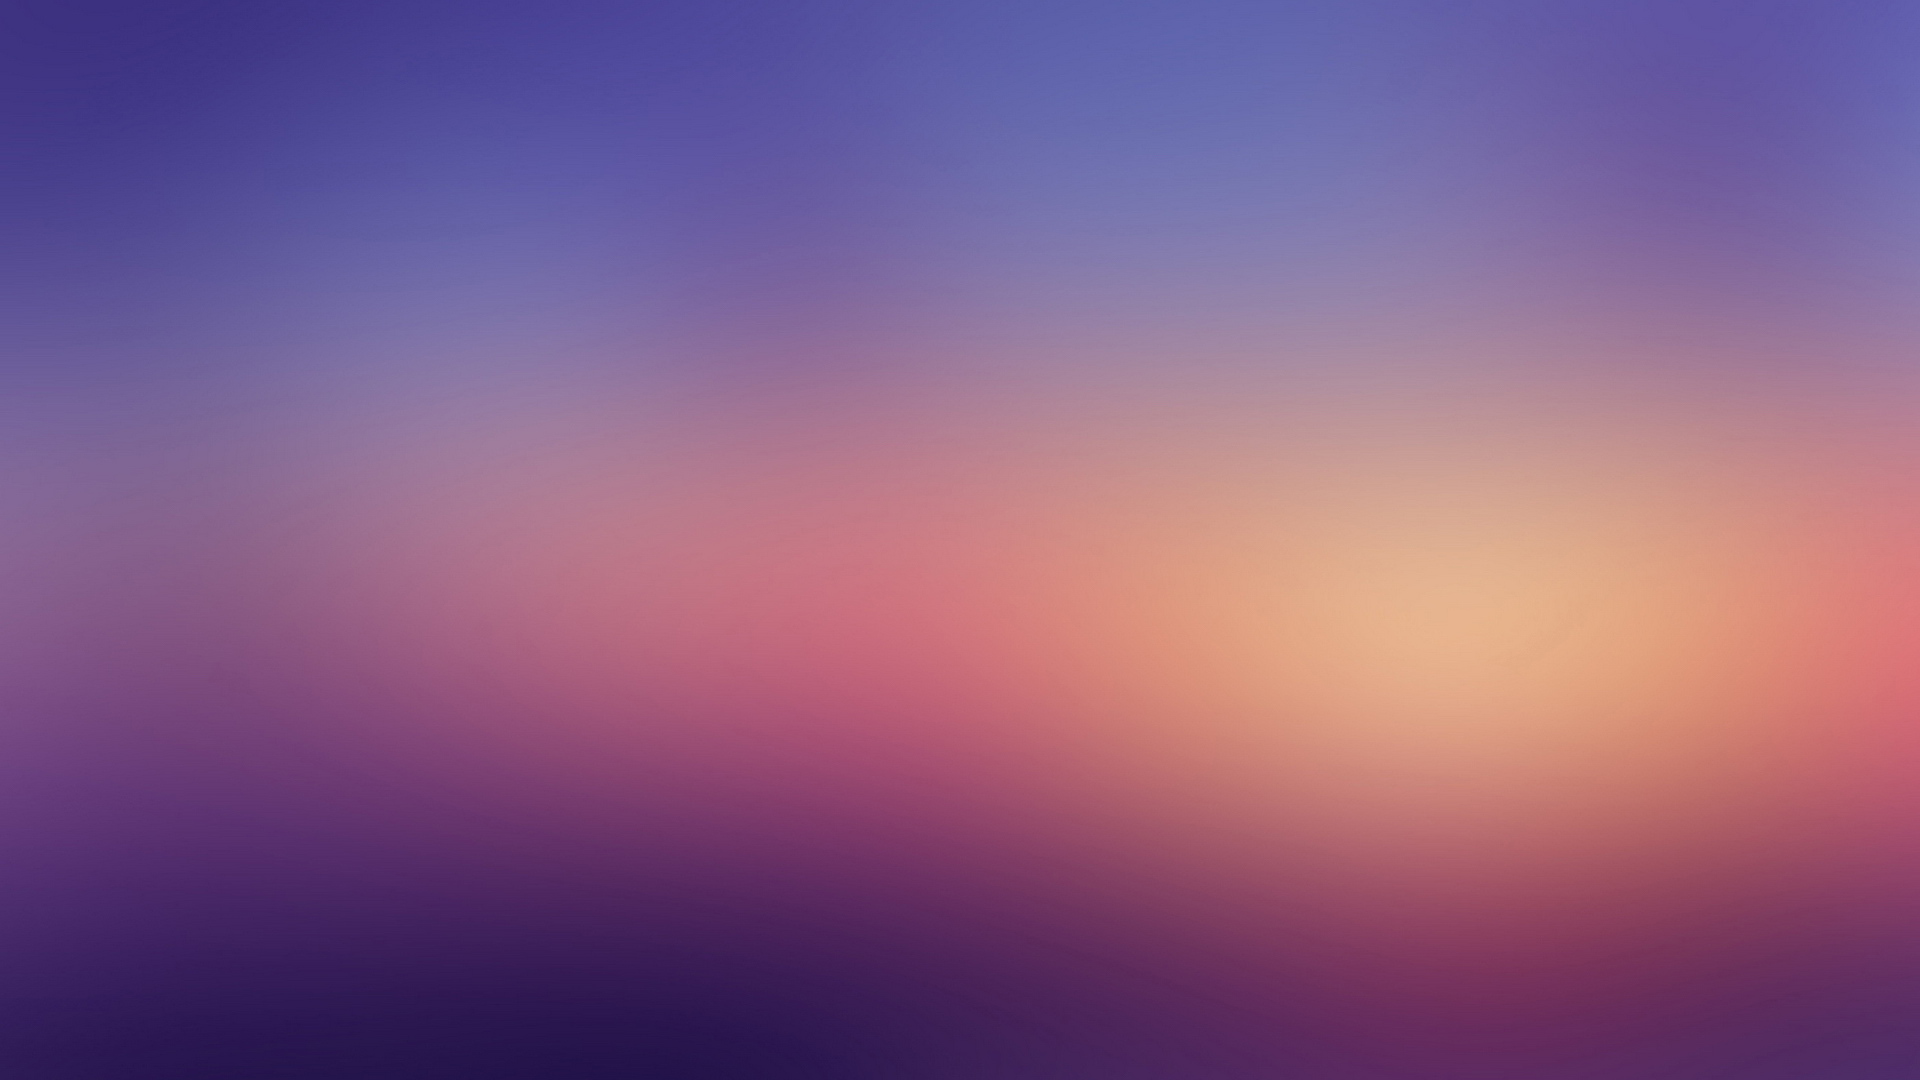 Gradient wallpaper